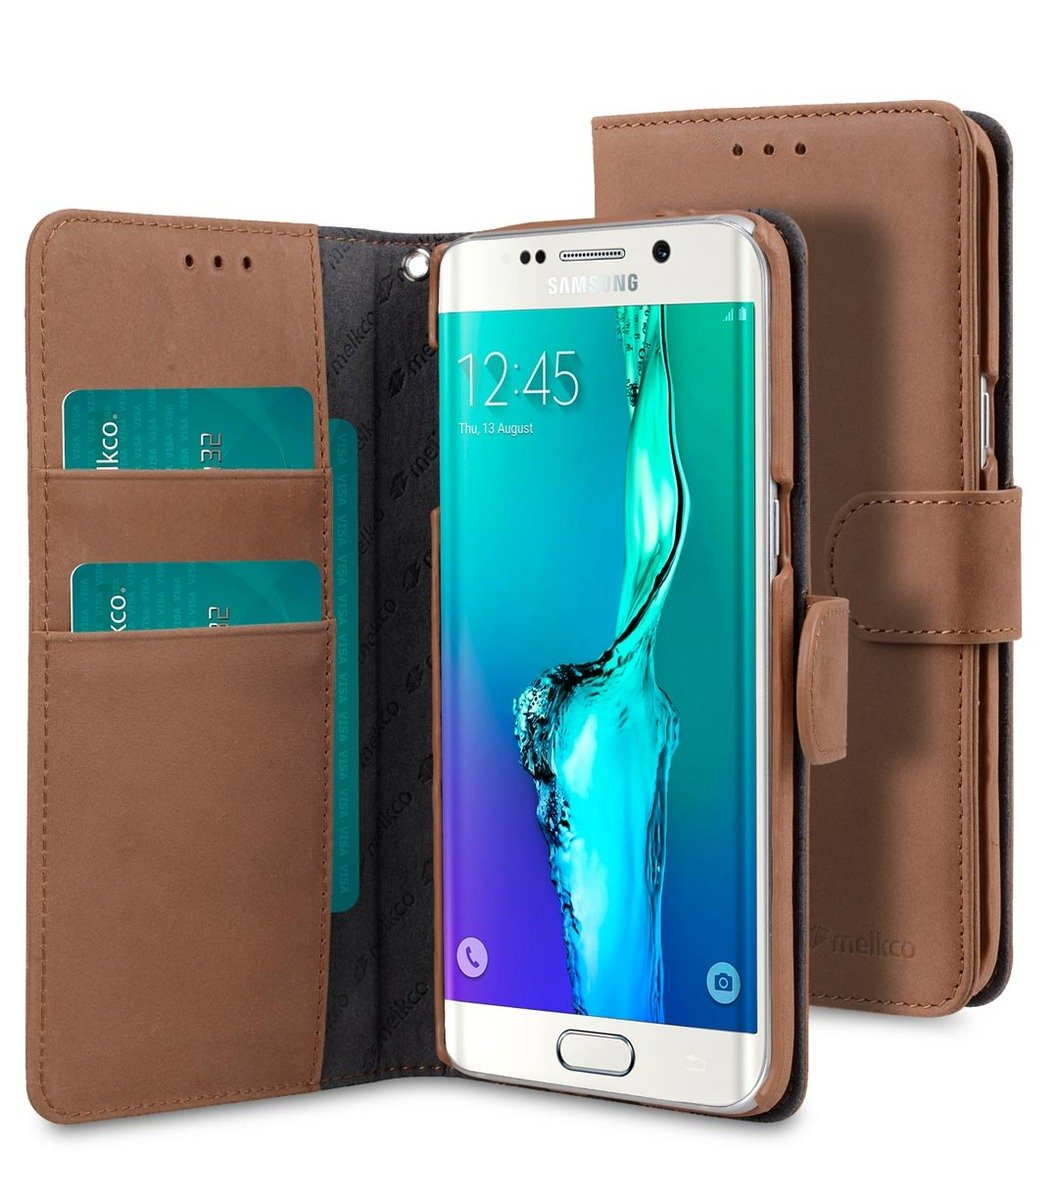 Samsung Galaxy S6 Edge Plus Wallet Book Type 高級真皮革手機套 - 磨沙啡色